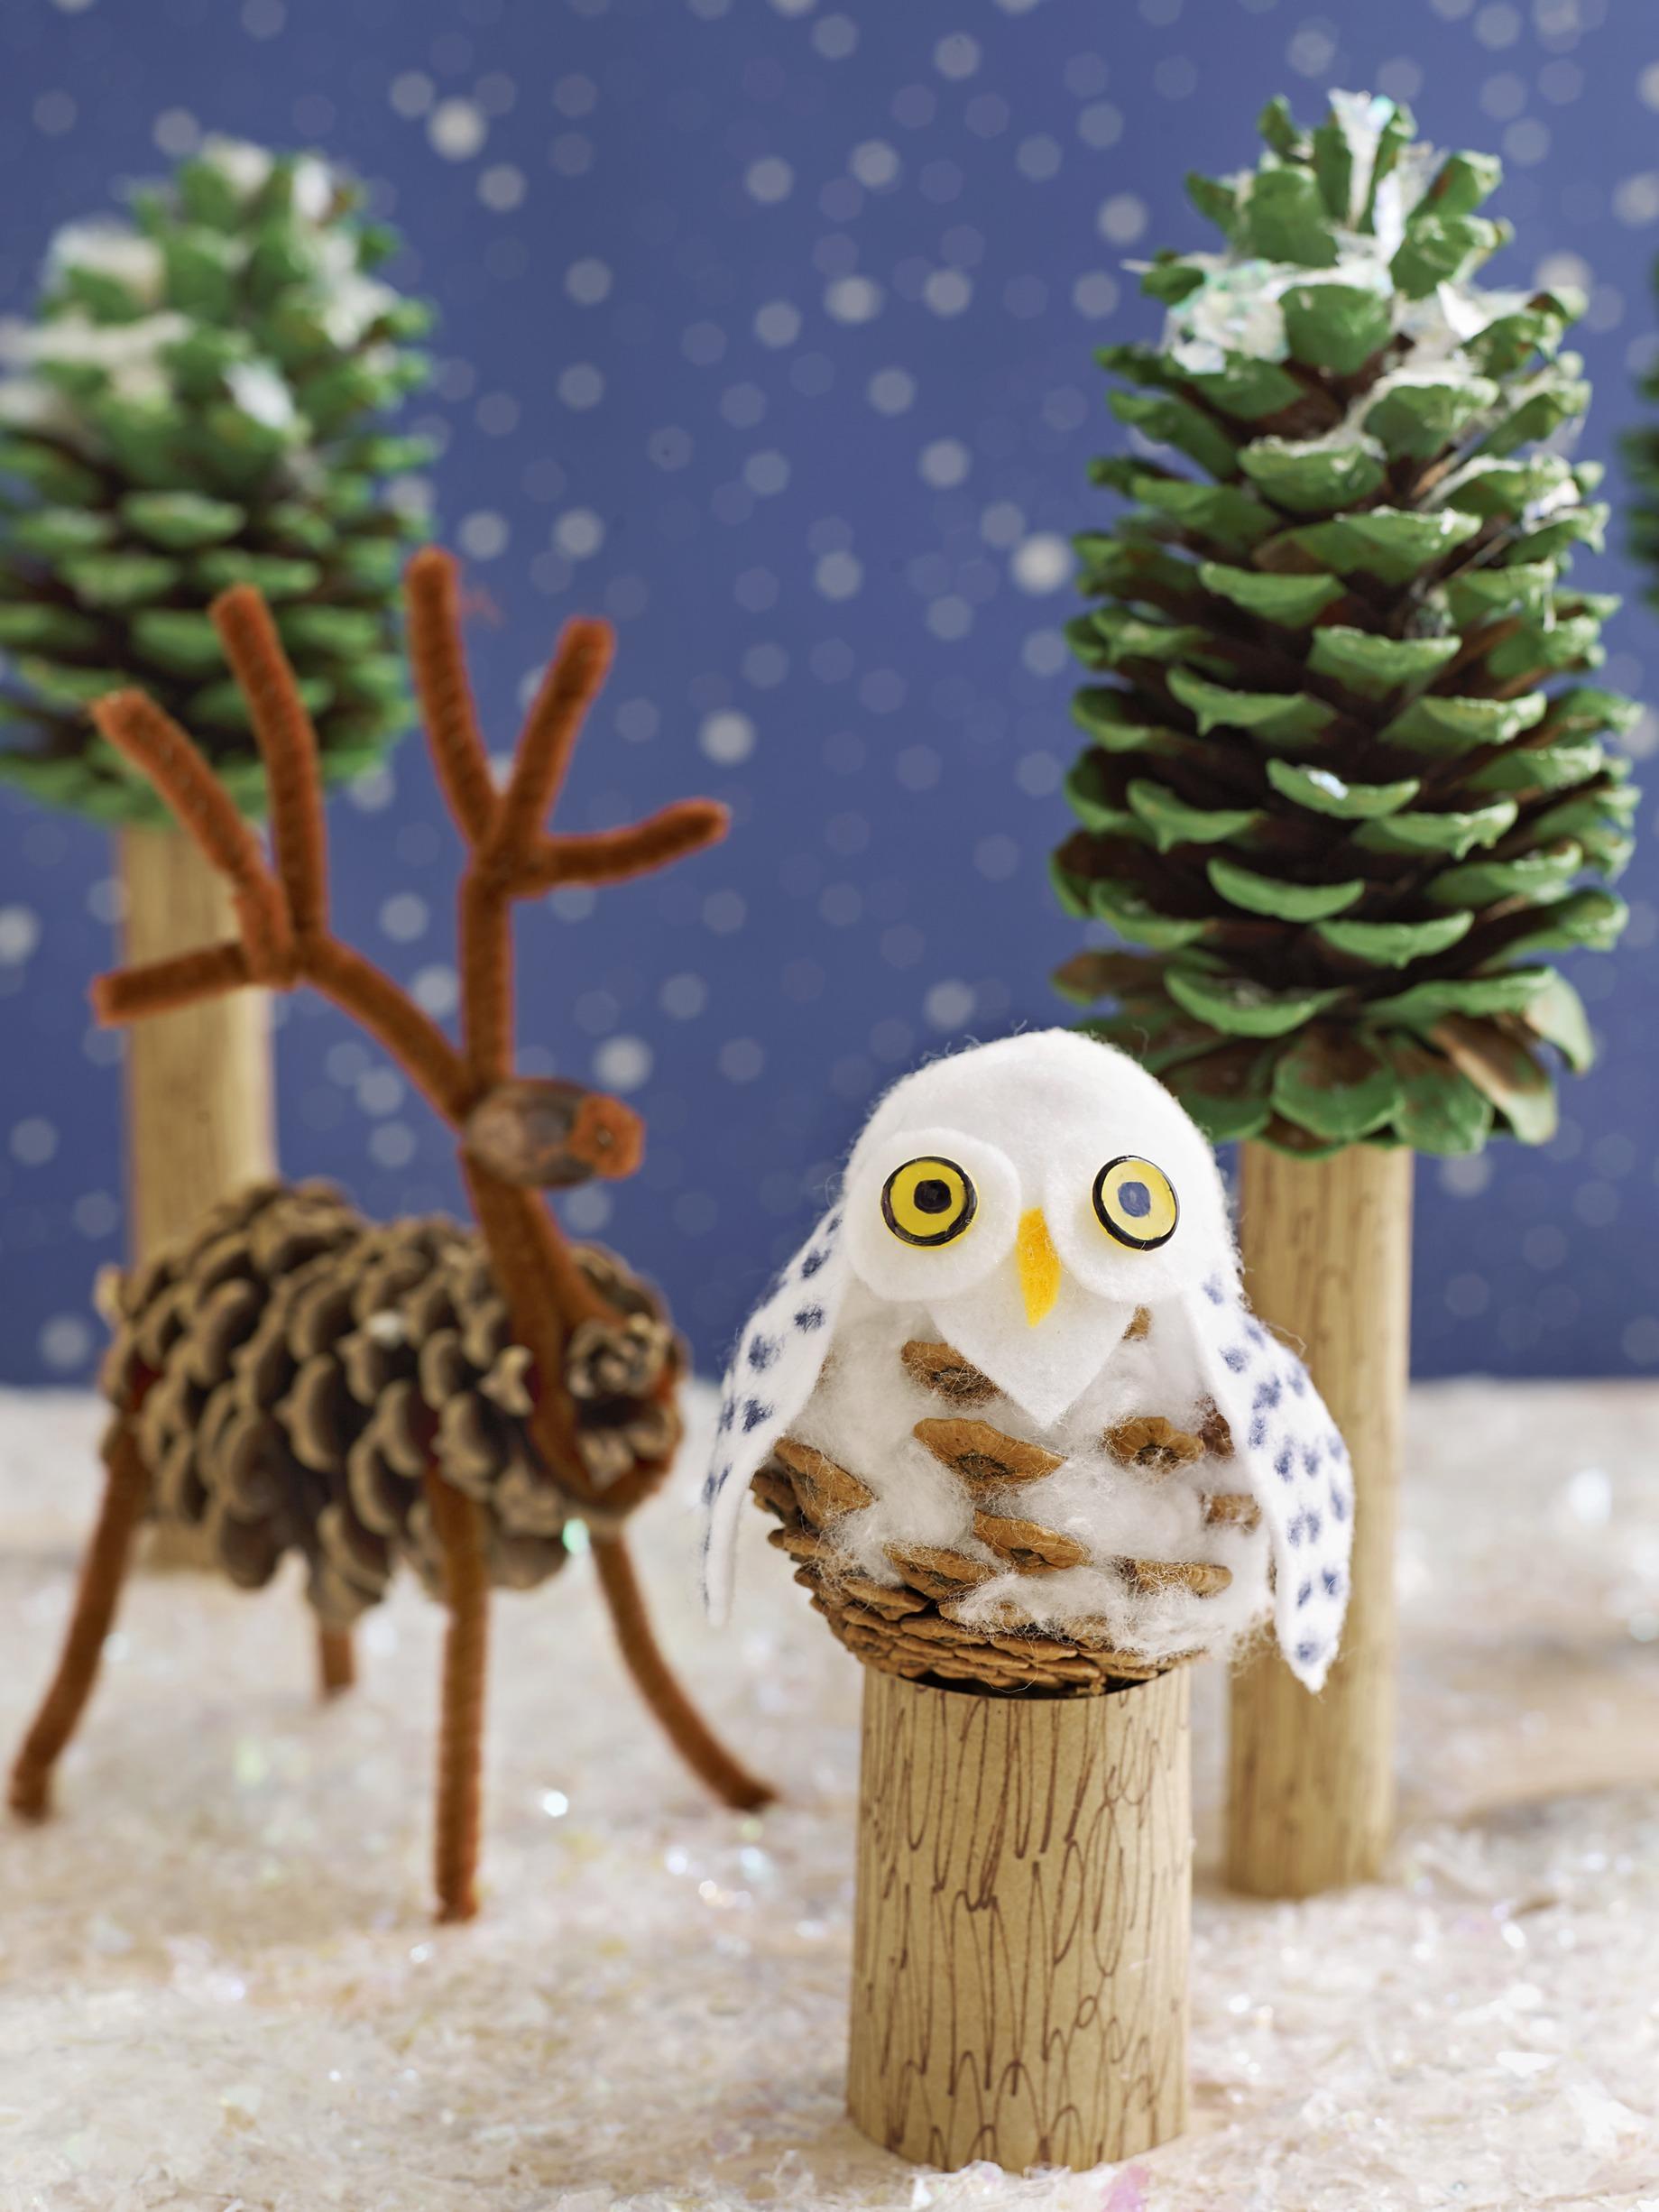 Pinecone Crafts And Decorations You Ll Want To Try Midwest